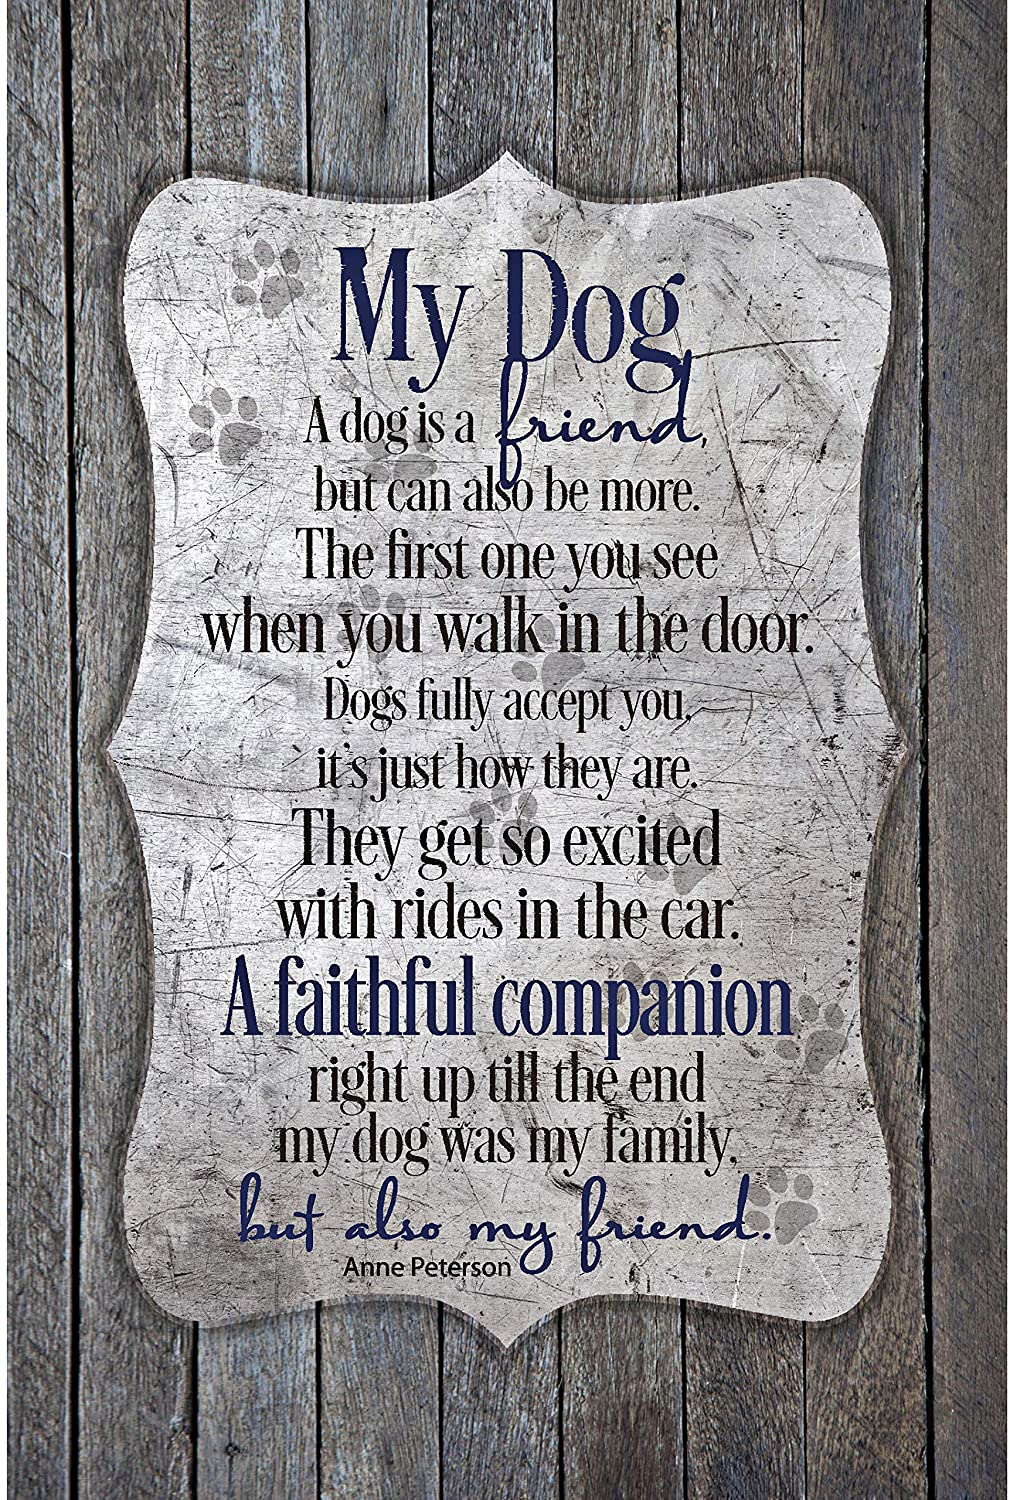 My Dog Wood Plaque with Inspiring Quotes 6 inches x 9 inches - Elegant Vertical Frame Wall & Tabletop Decoration   Easel & Hanging Hook   A Dog is a Friend, but can Also be More